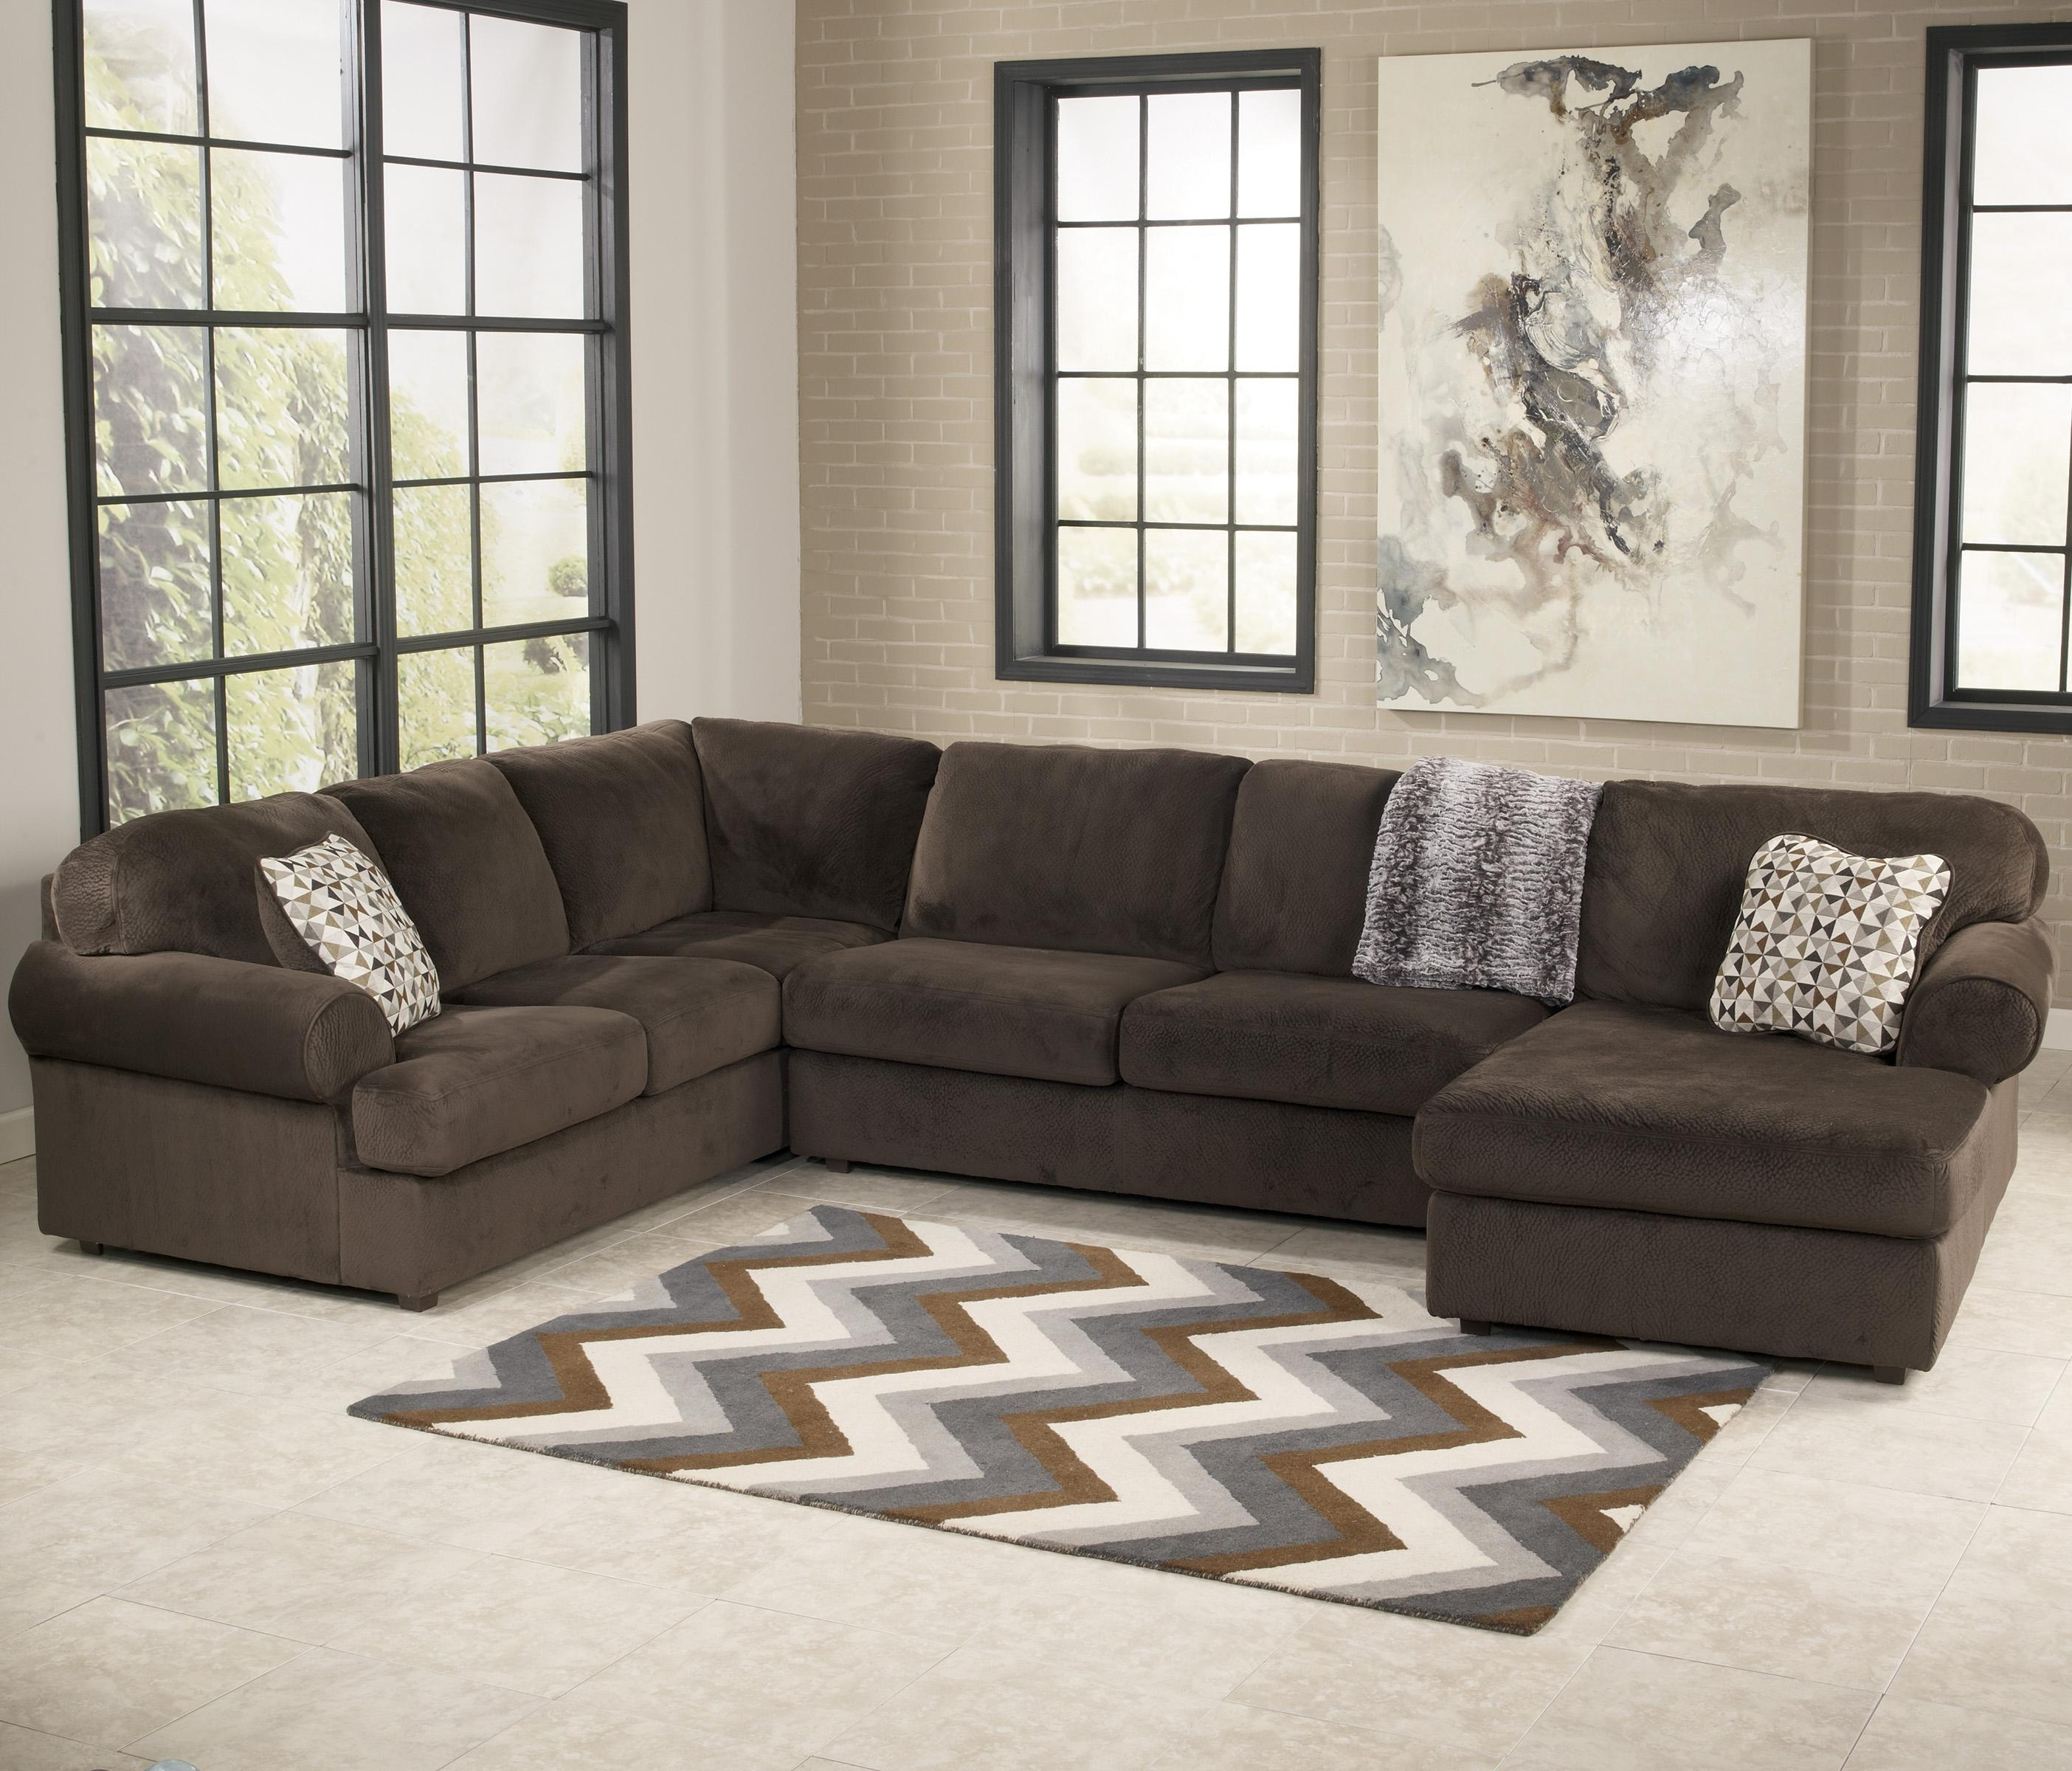 Signature Designashley Jessa Place – Chocolate Casual In Latest Chocolate Sectional Sofas (View 16 of 20)